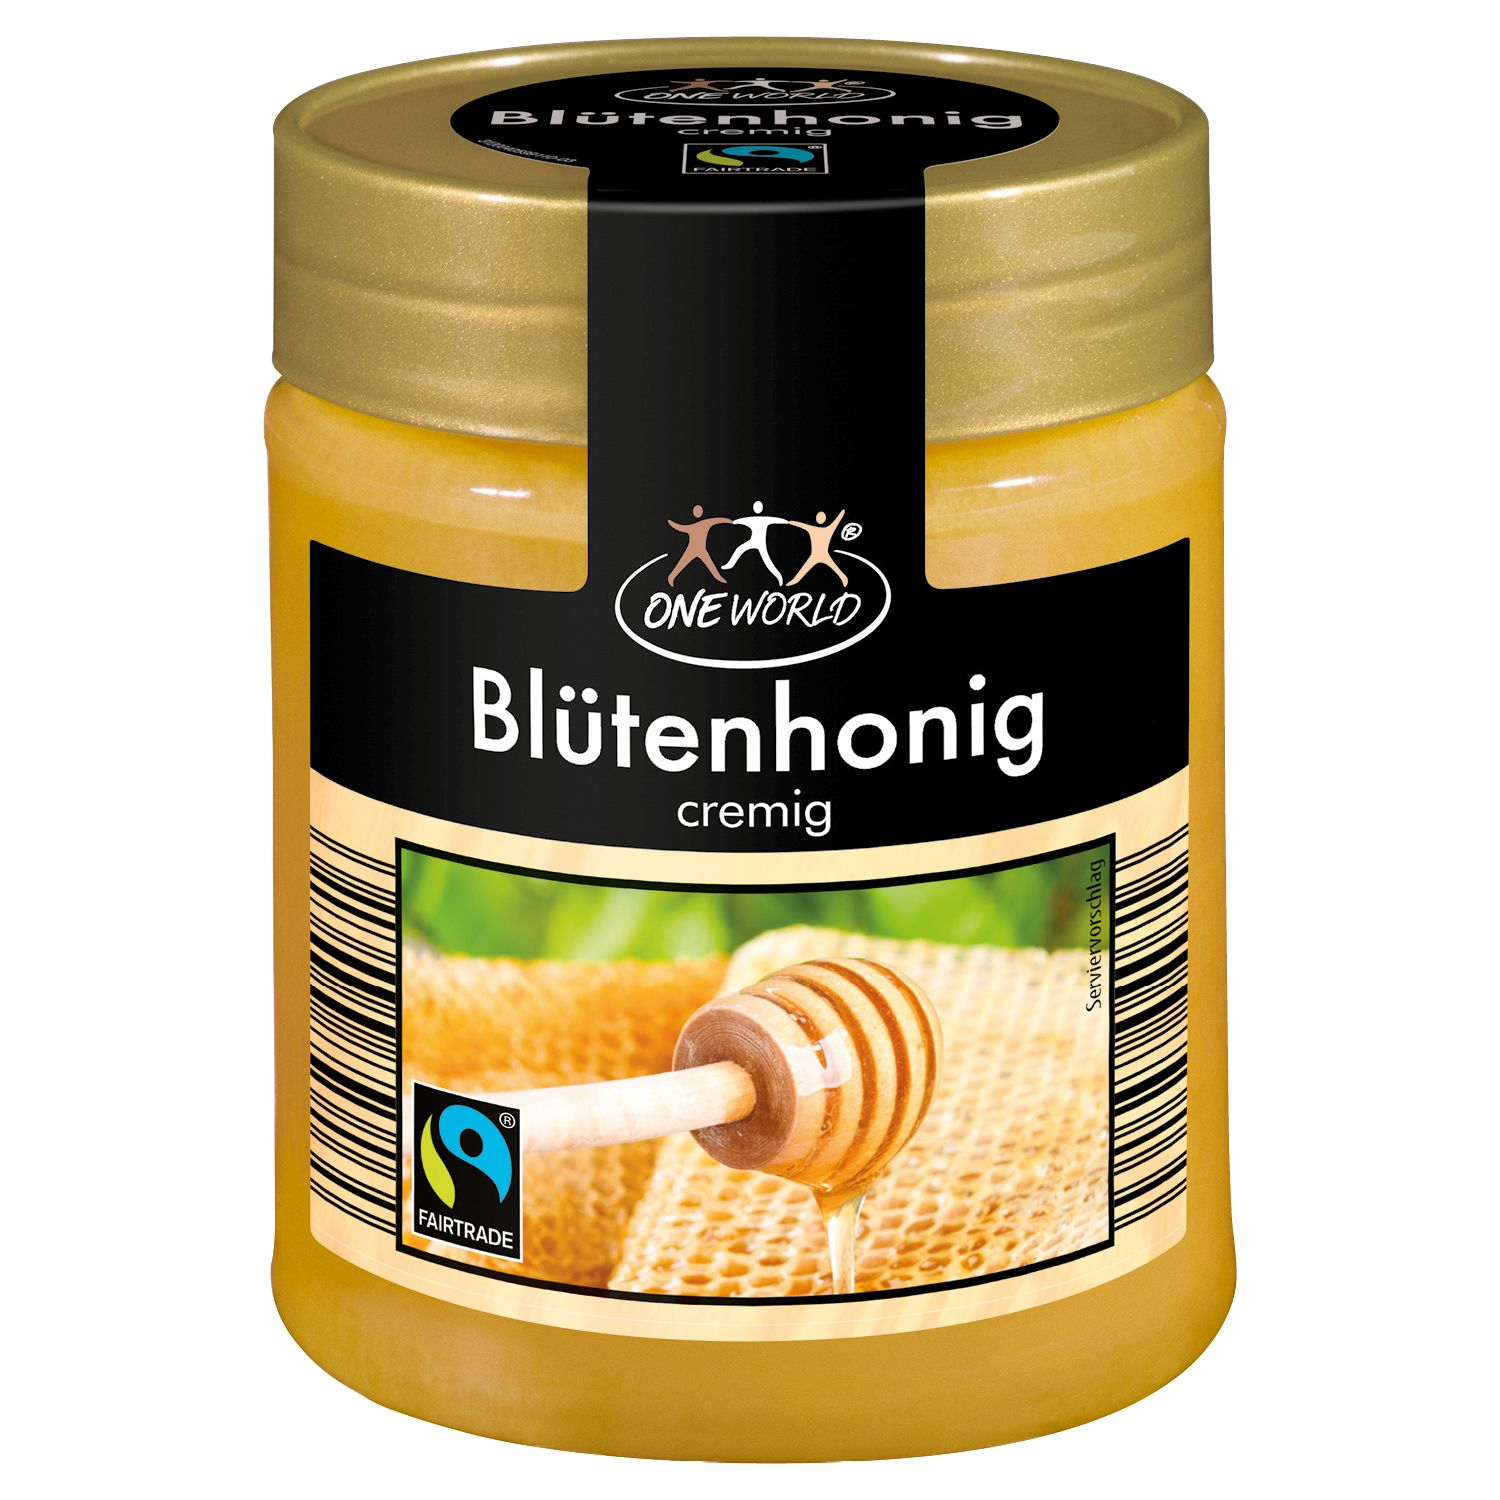 One World Blütenhonig cremig 500g